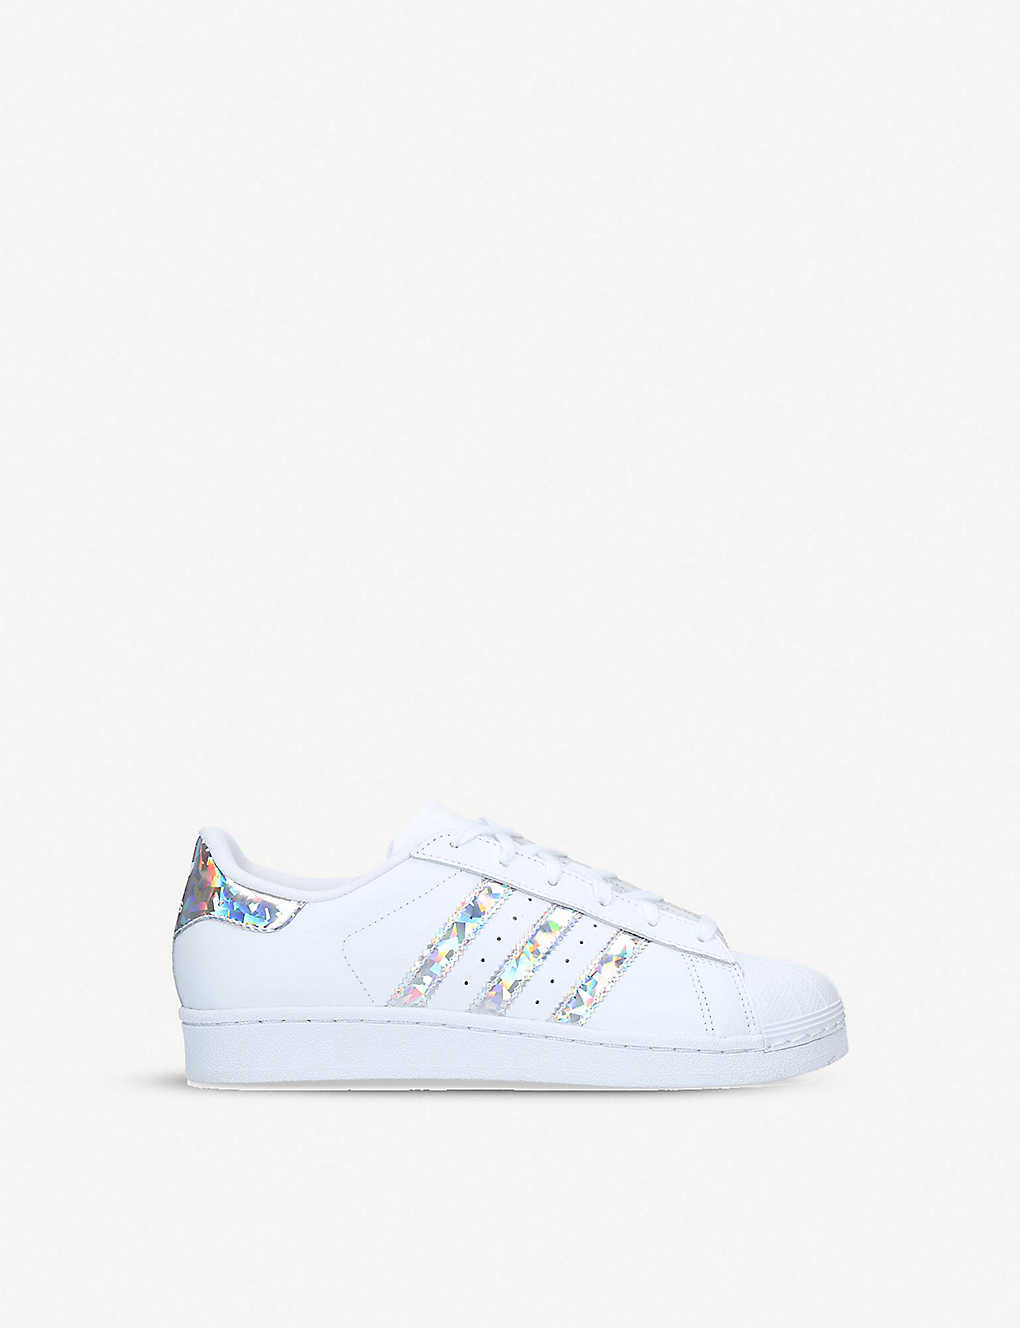 medalist etc Auckland  ADIDAS - Superstar iridescent-stripe leather trainers 1-5 years |  Selfridges.com